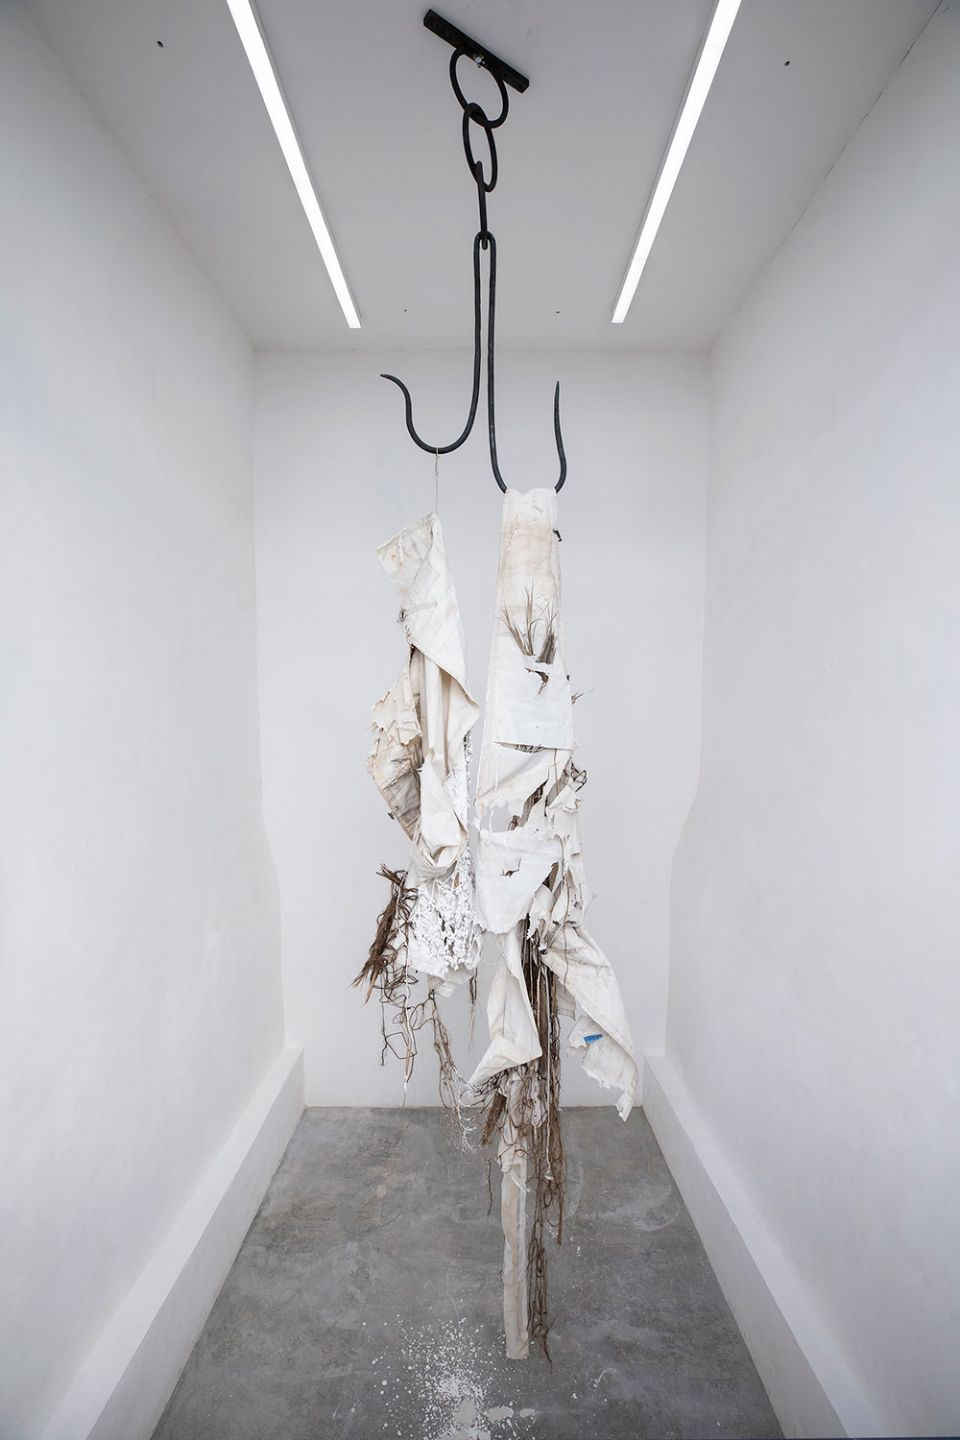 Dominique White, Fugitive of the State(less), 2019